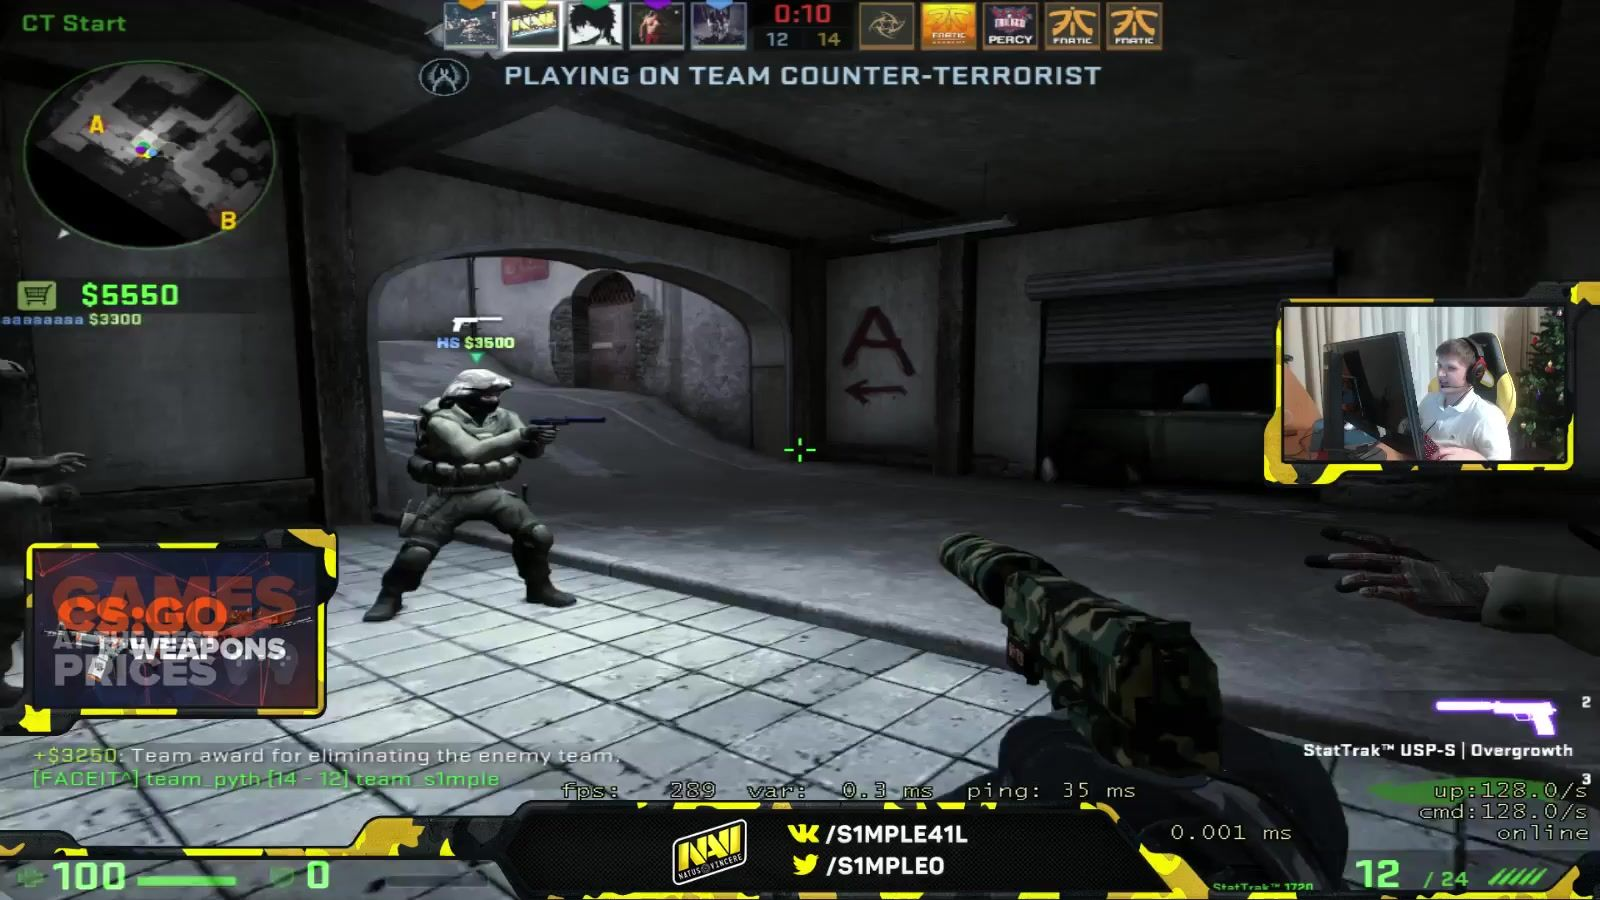 s1mple and JW share a laugh about their old teams #games